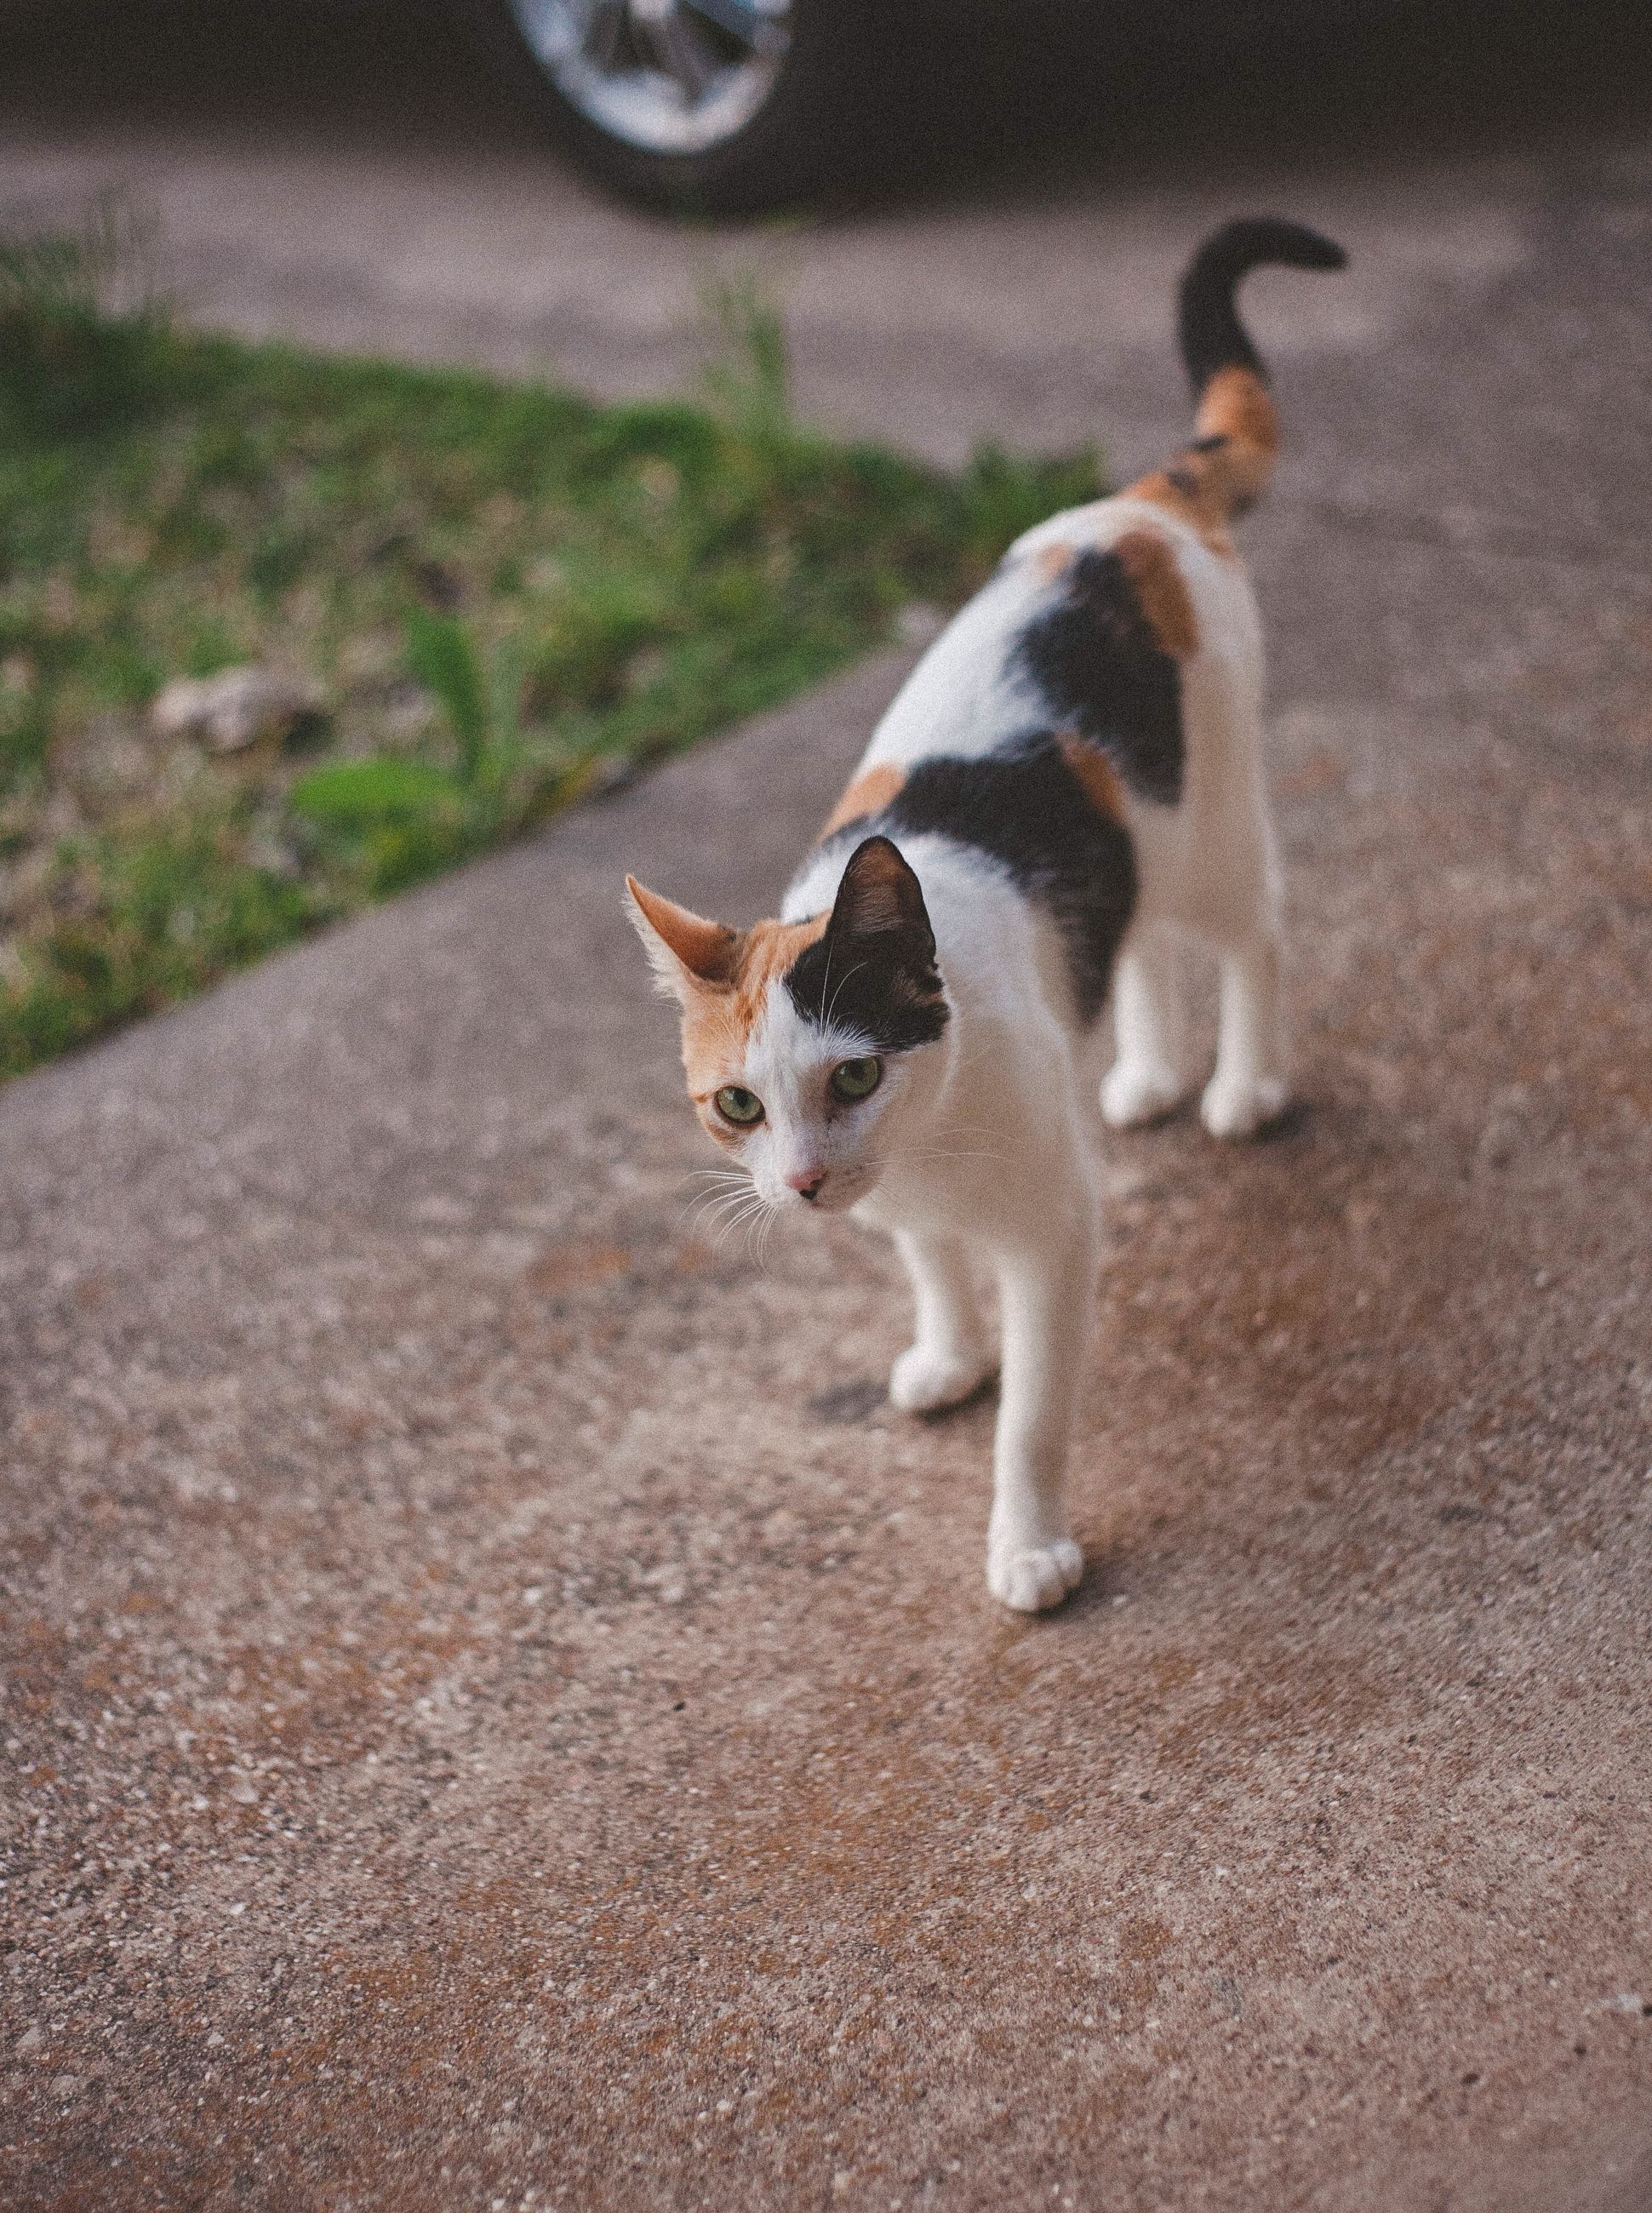 domestic, pets, domestic animals, cat, domestic cat, mammal, feline, one animal, vertebrate, no people, day, footpath, full length, standing, looking, portrait, whisker